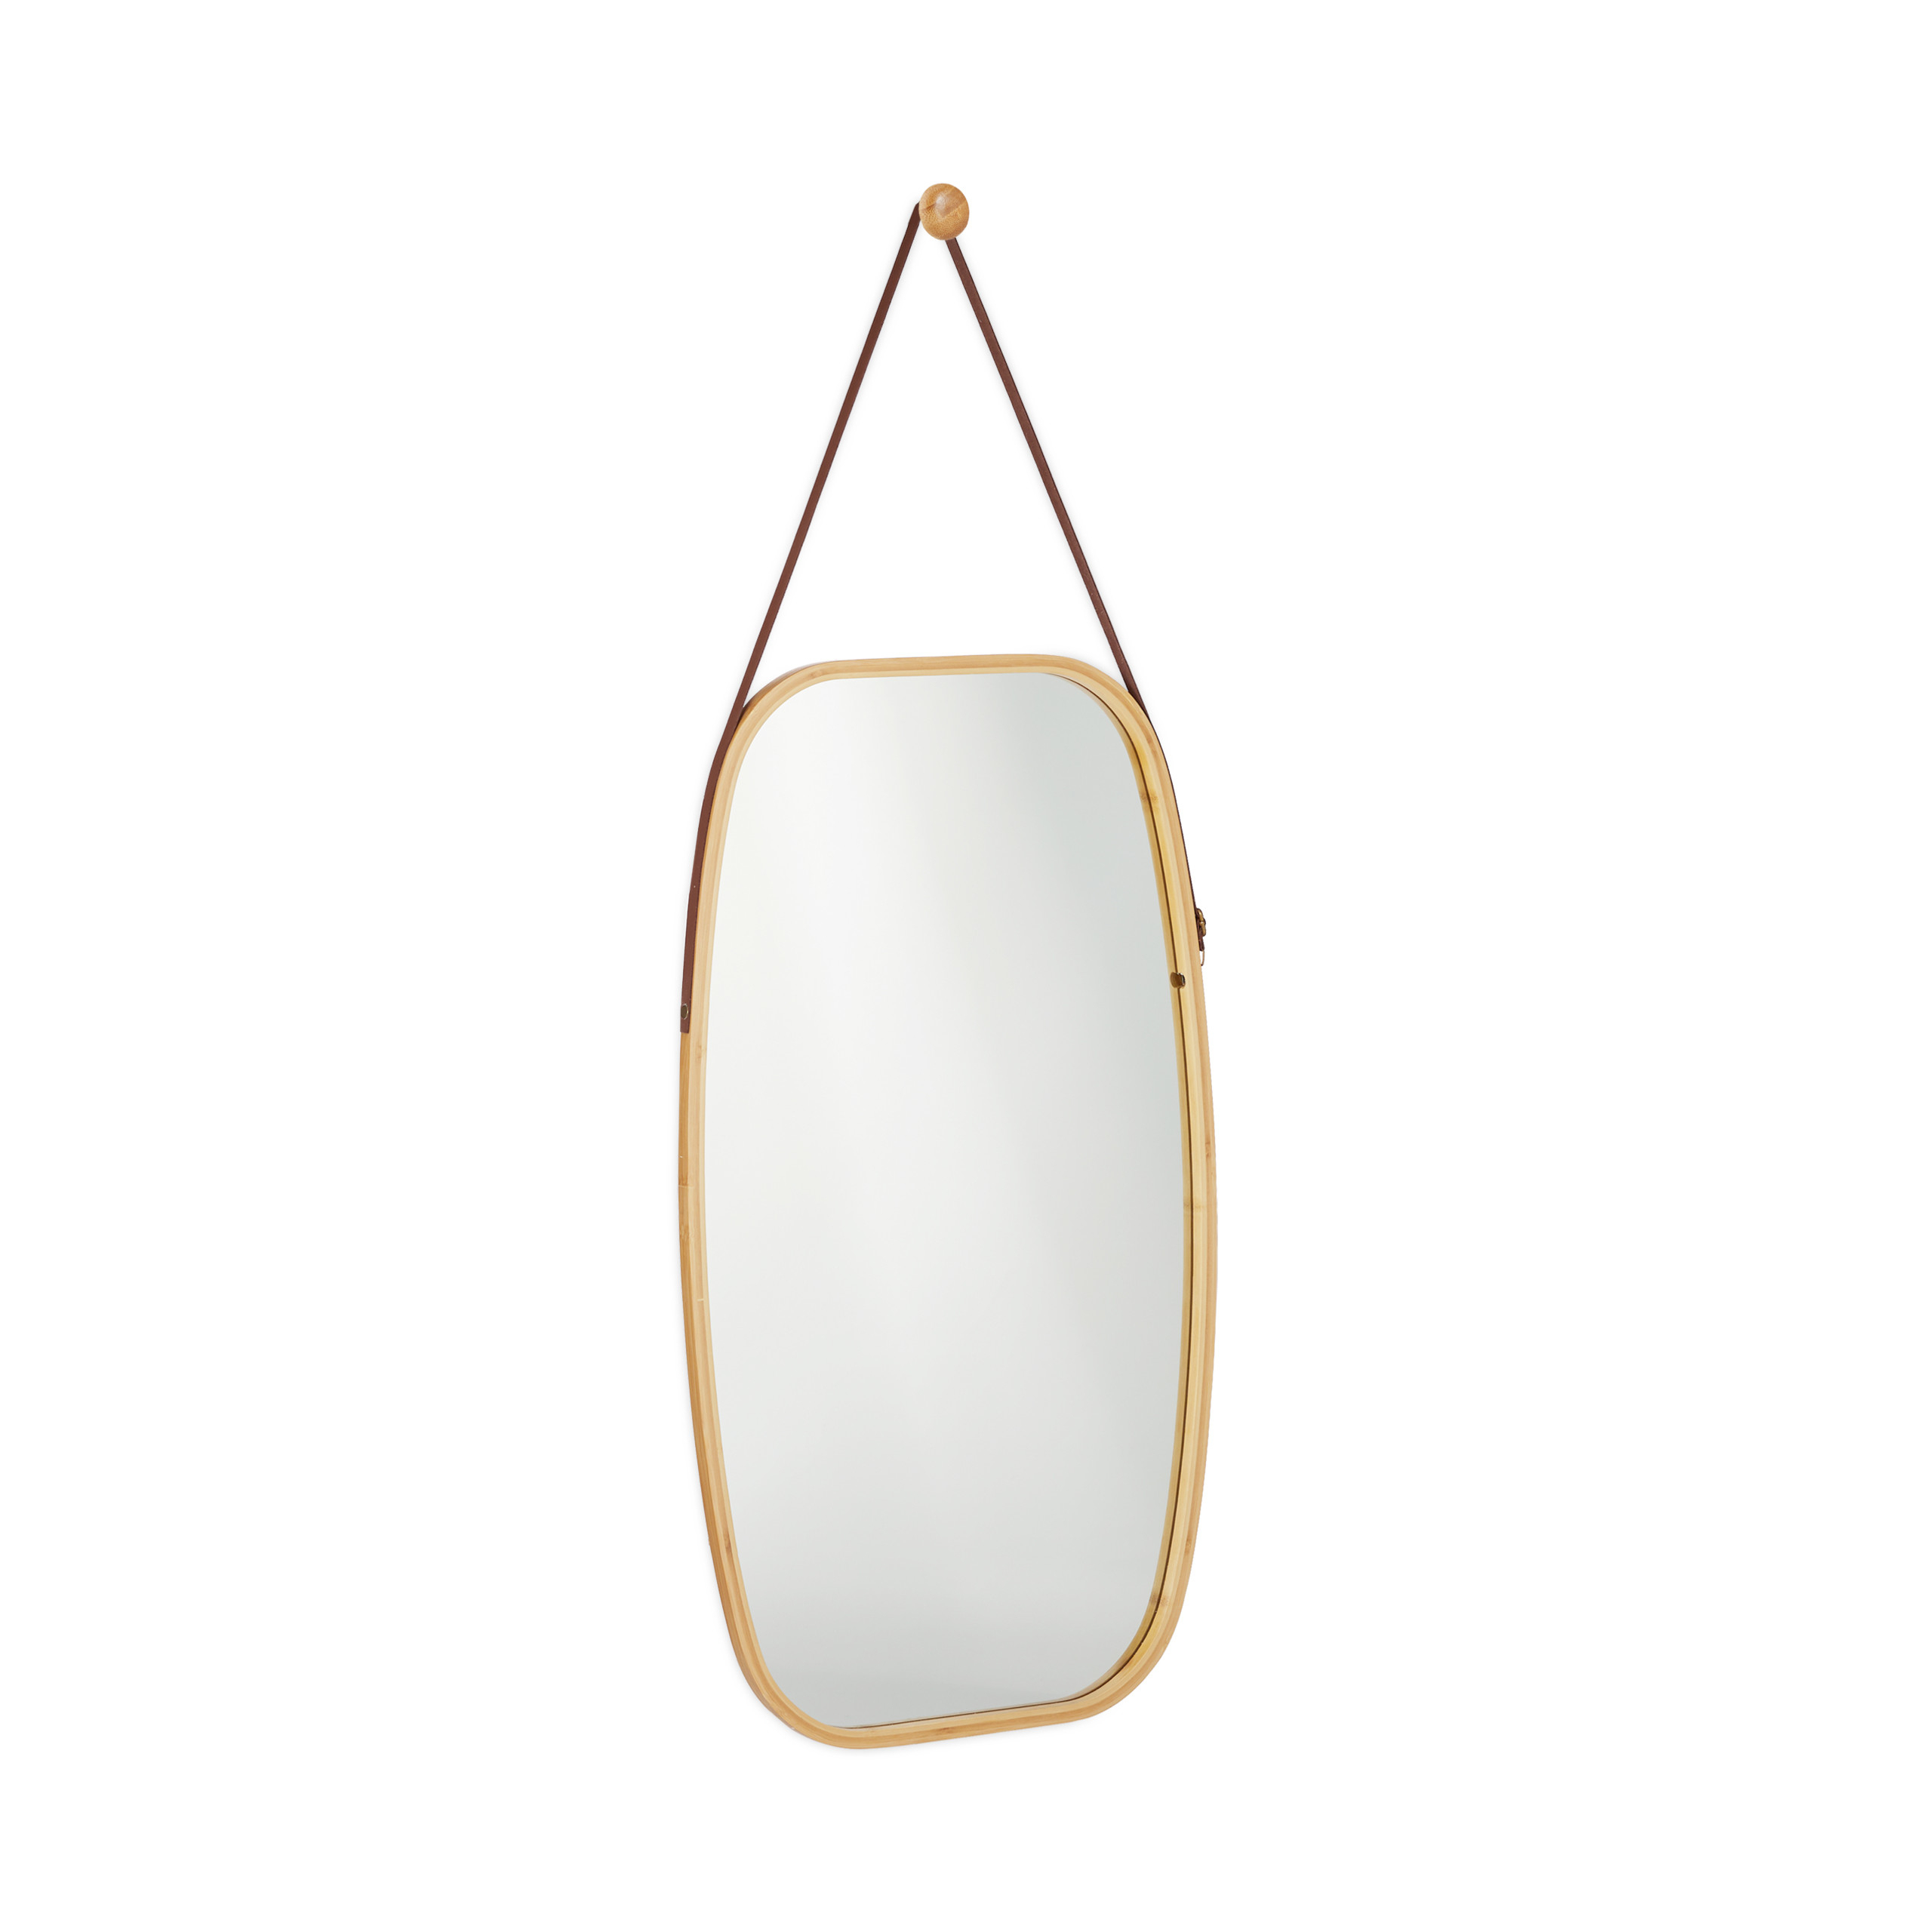 Details About Oval Hallways Wall Mirror, Hanging Vanity Mirror With Strap, Decorative Bamboo Inside Bem Decorative Wall Mirrors (Gallery 28 of 30)